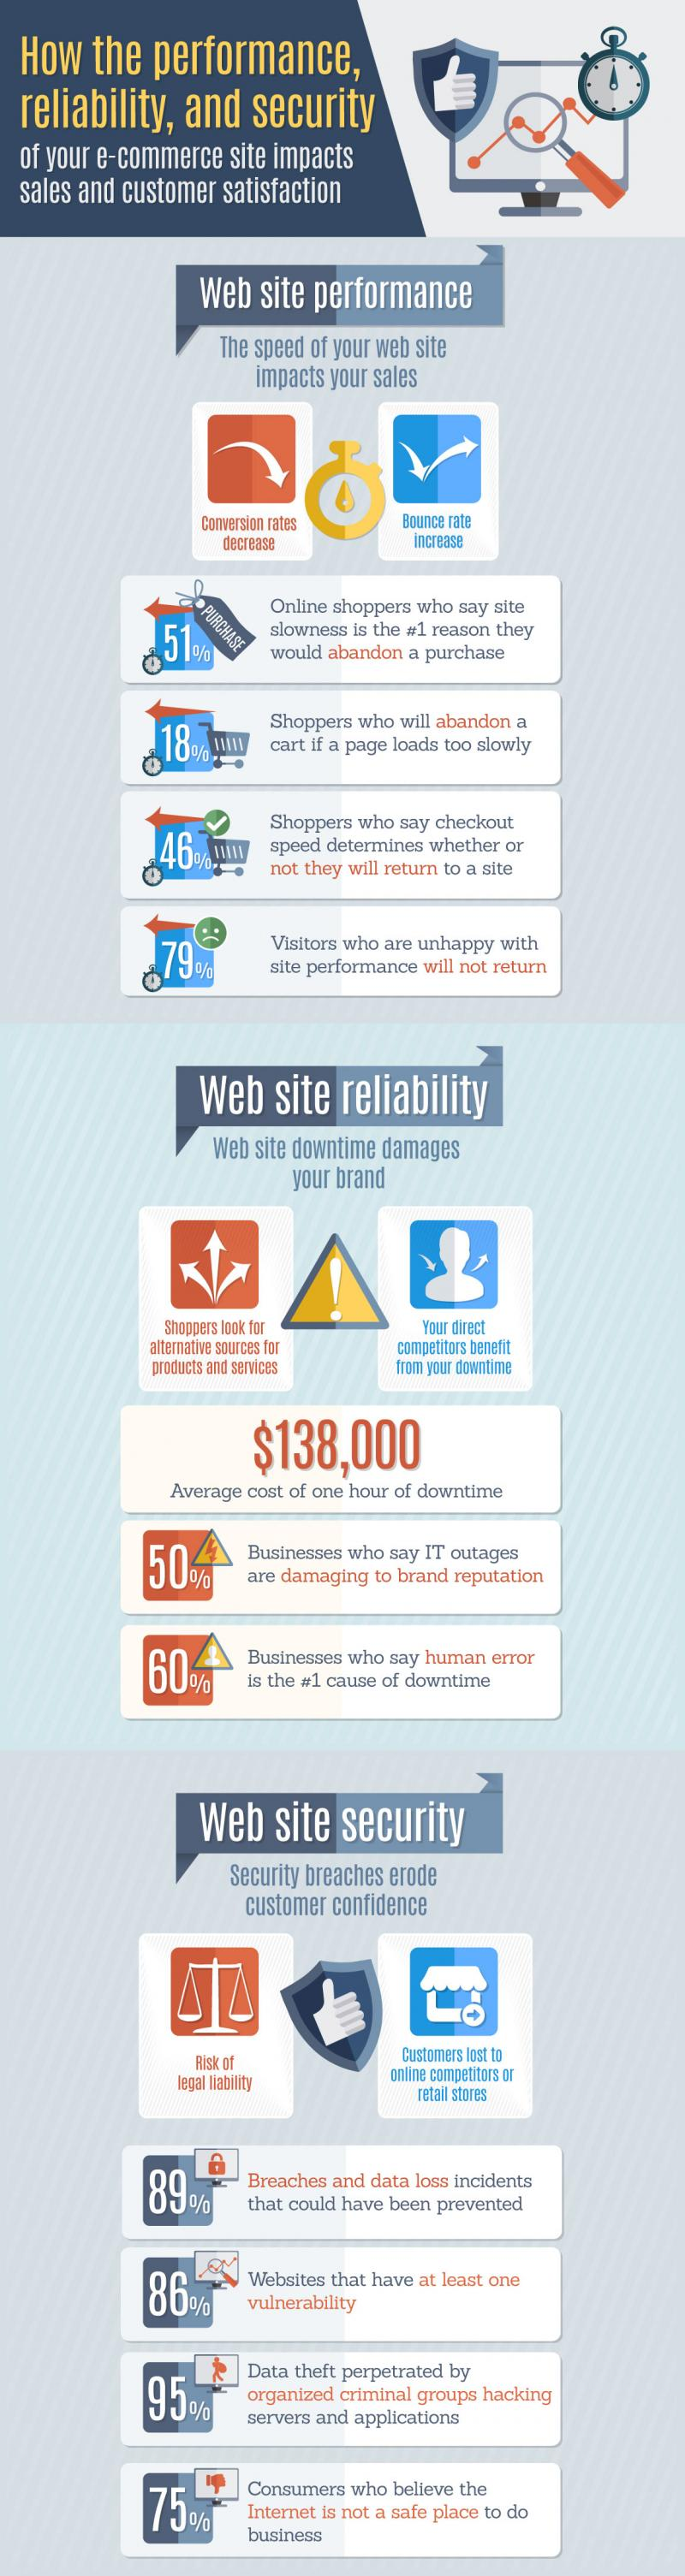 wefixit performance hosting infographic